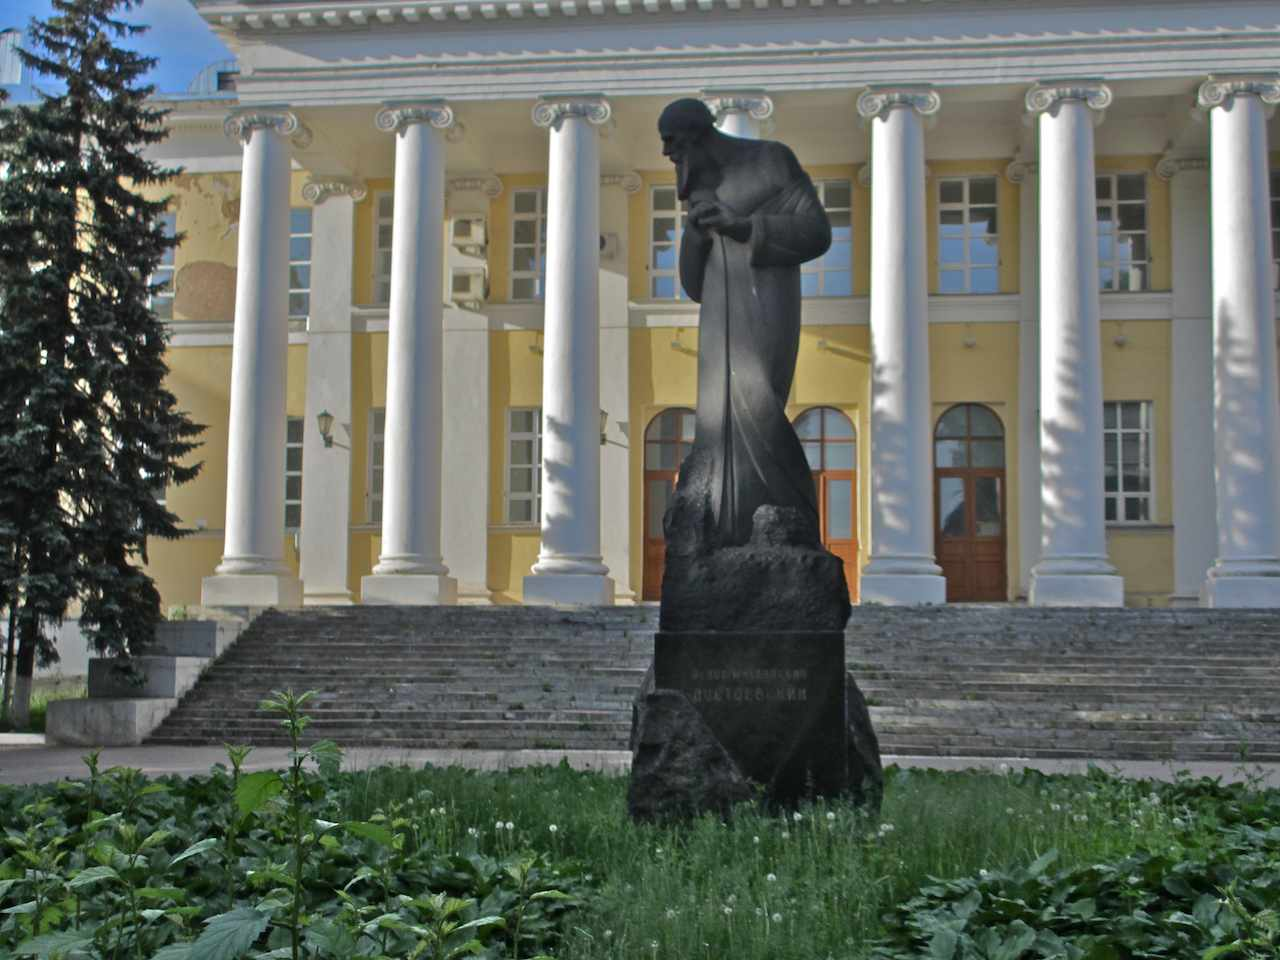 Tolstoy Memorial Museum Moscow, Fyodor Dostoevsky monument, Moscow | Russian Culture in Landmarks